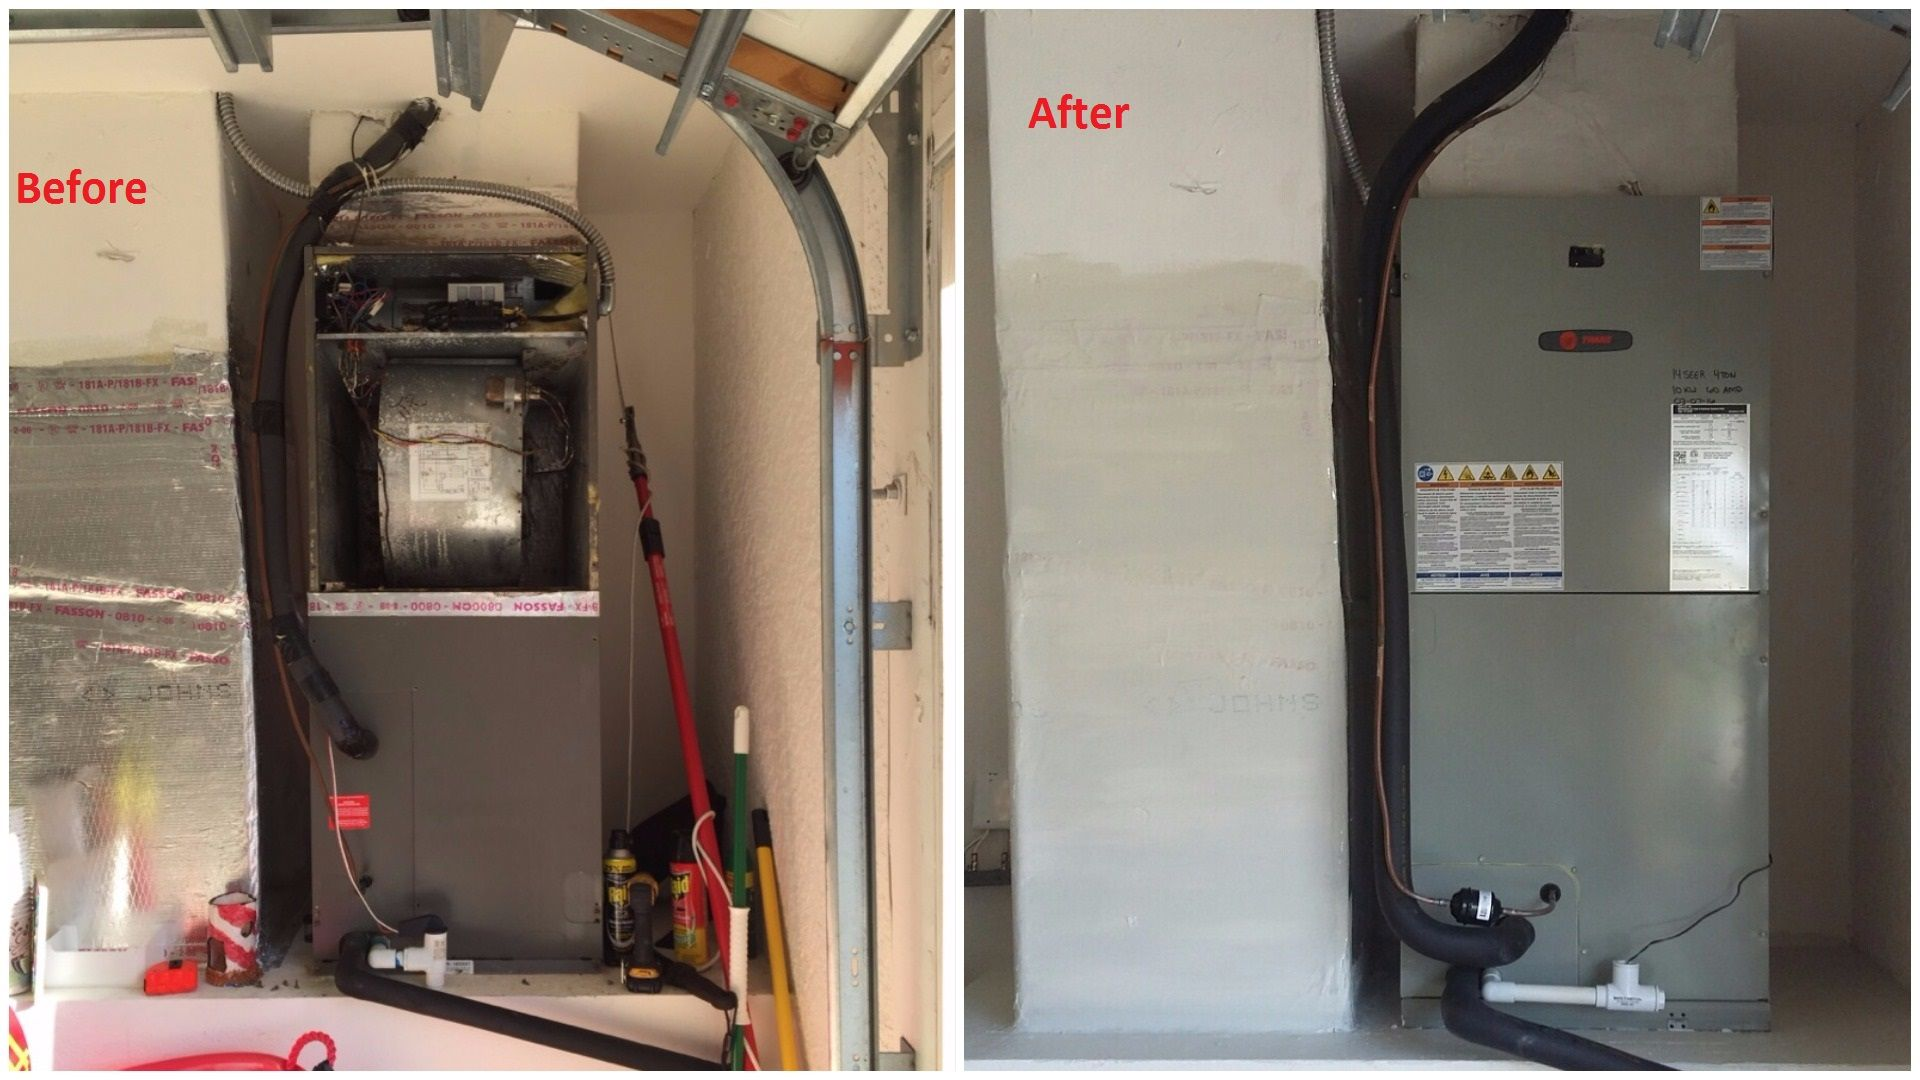 Pin By Certified Heating And Cooling On Before And After Air Conditioner Replacement And Installation From Naples To Fort Myers Air Conditioning Companies Fort Myers Naples